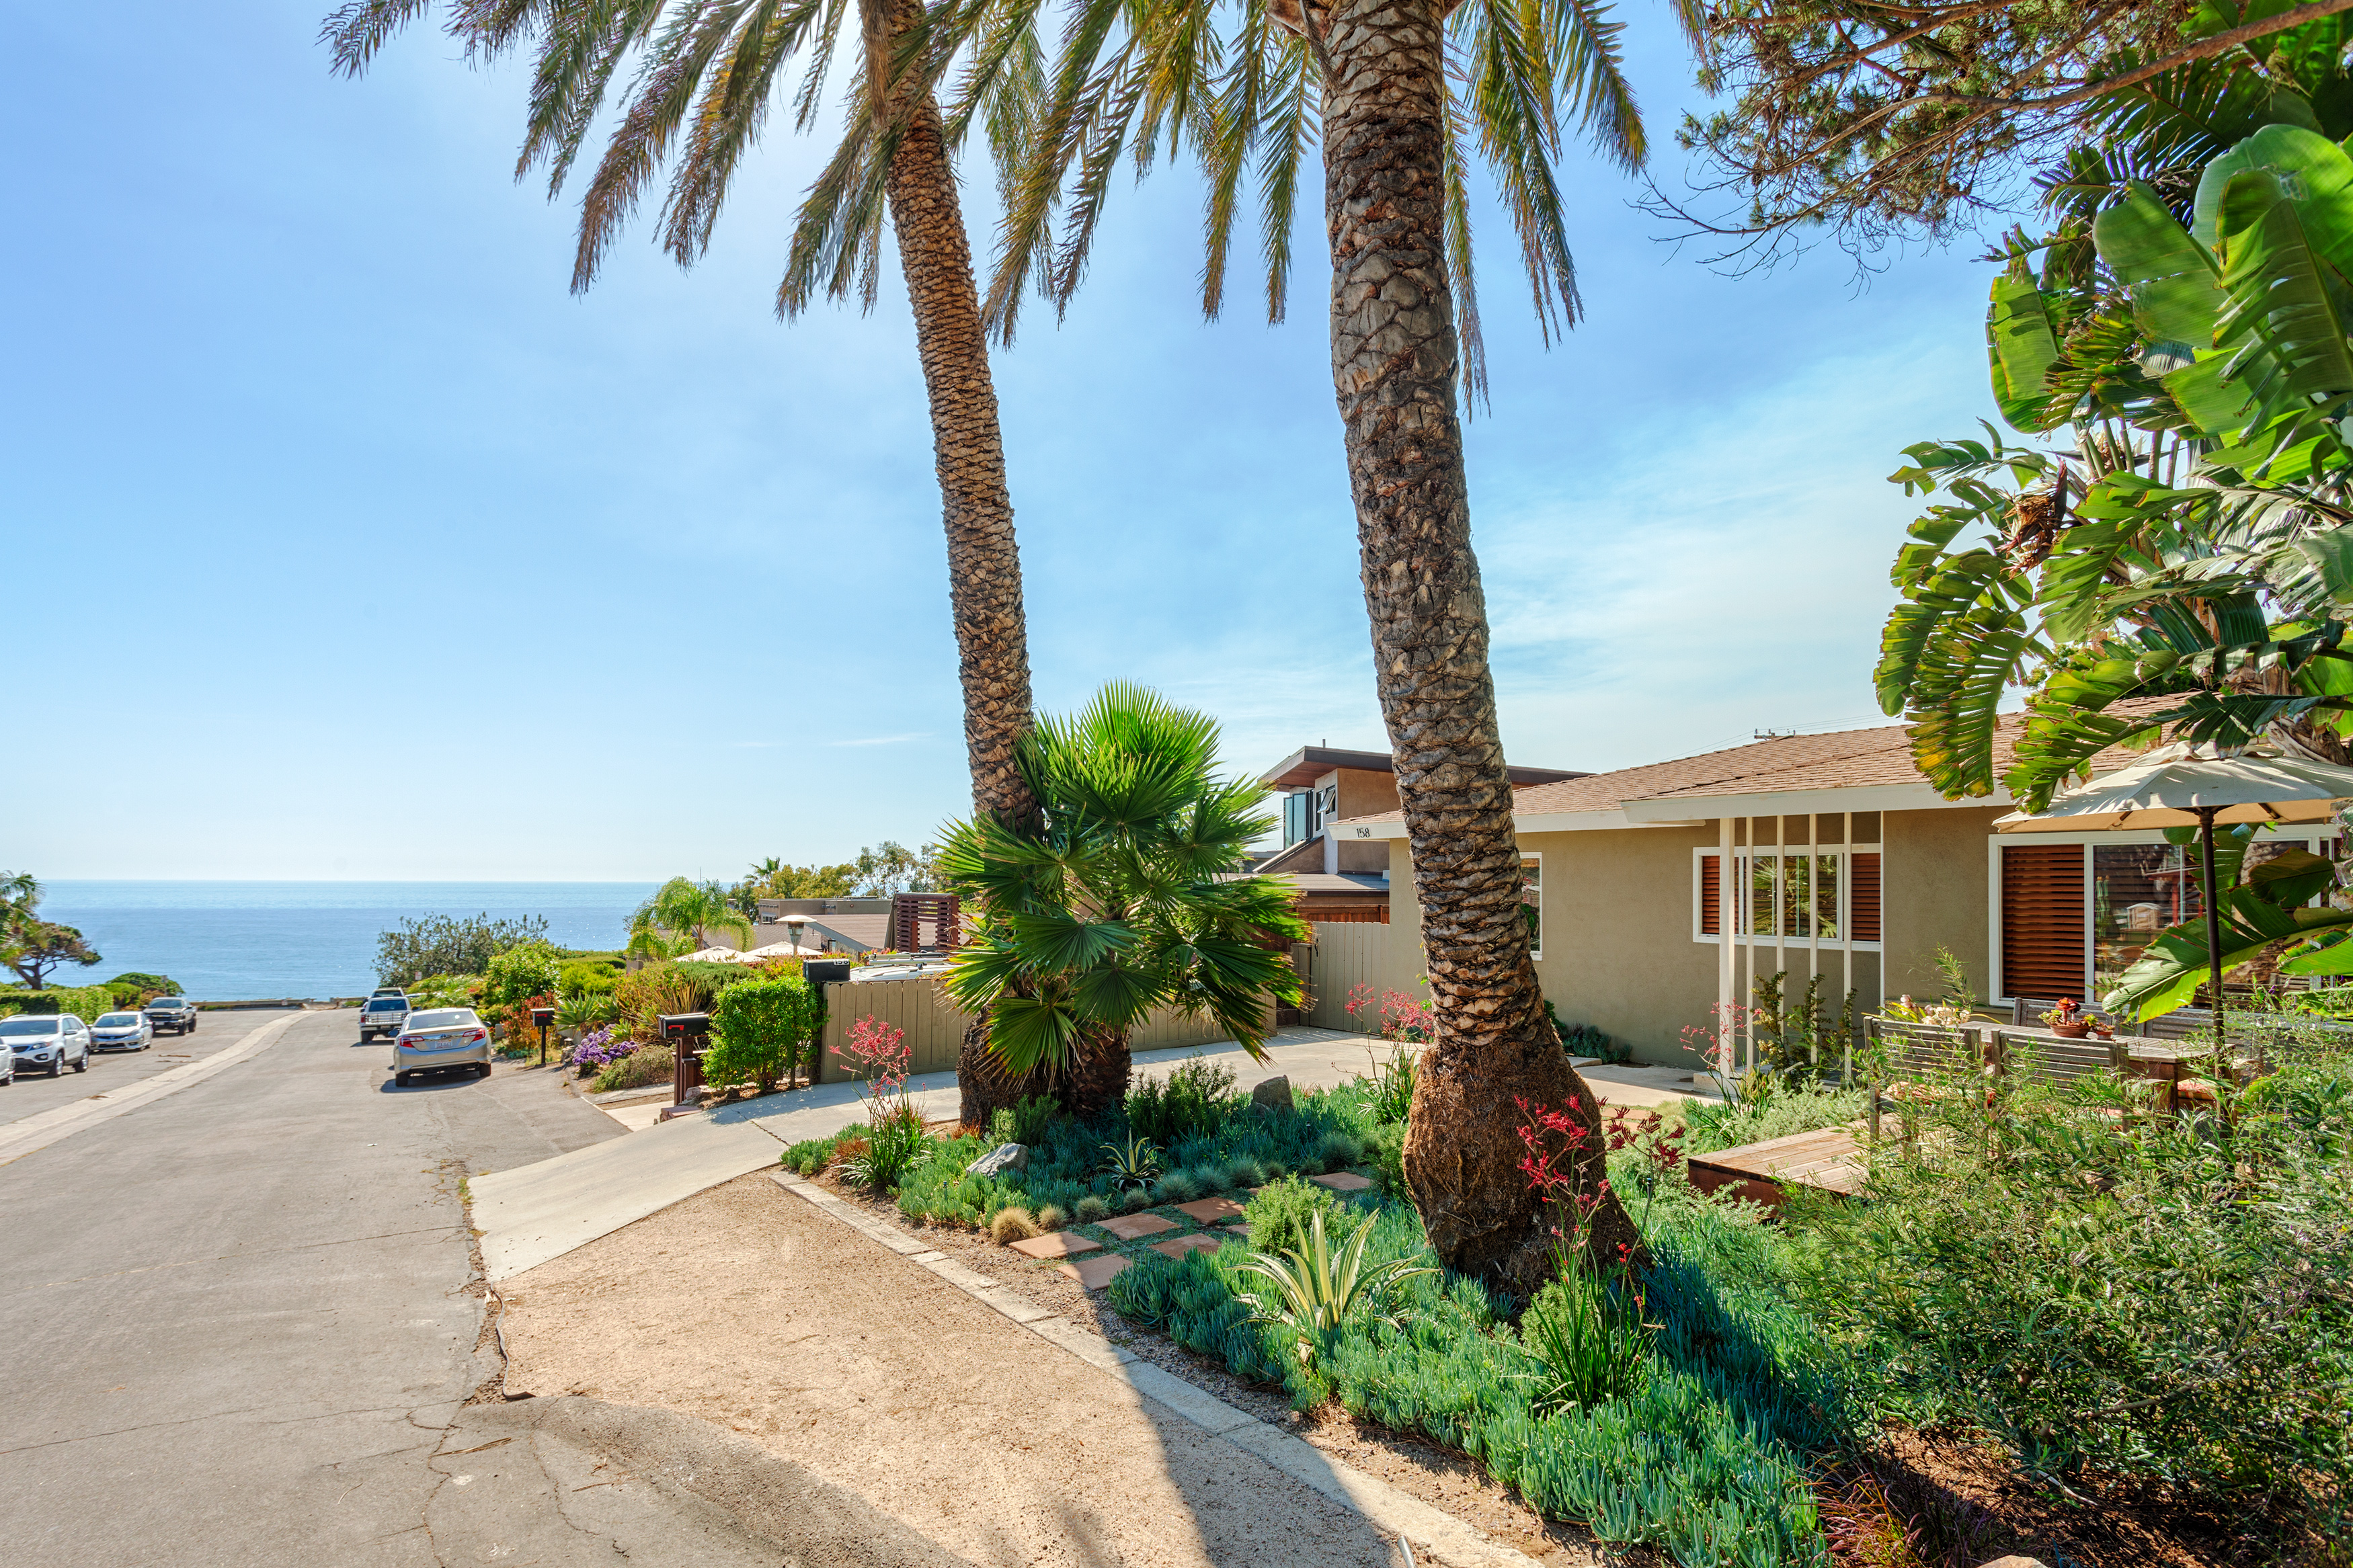 Sold 2015 Represented Seller -  Del Mar, CA 92014